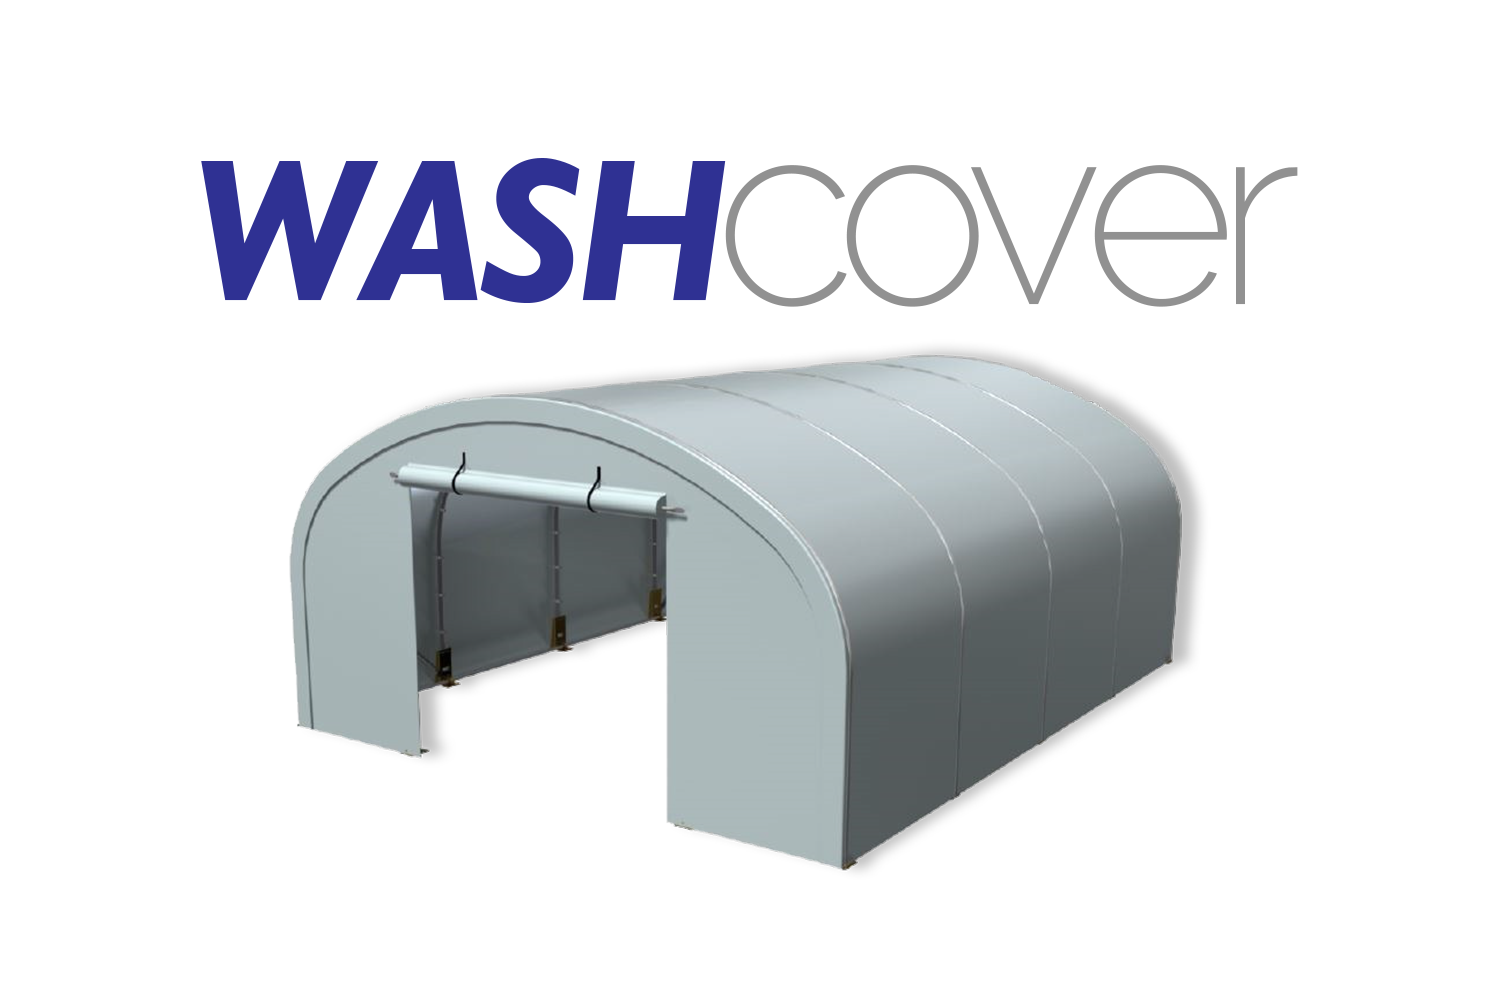 Wash Covers